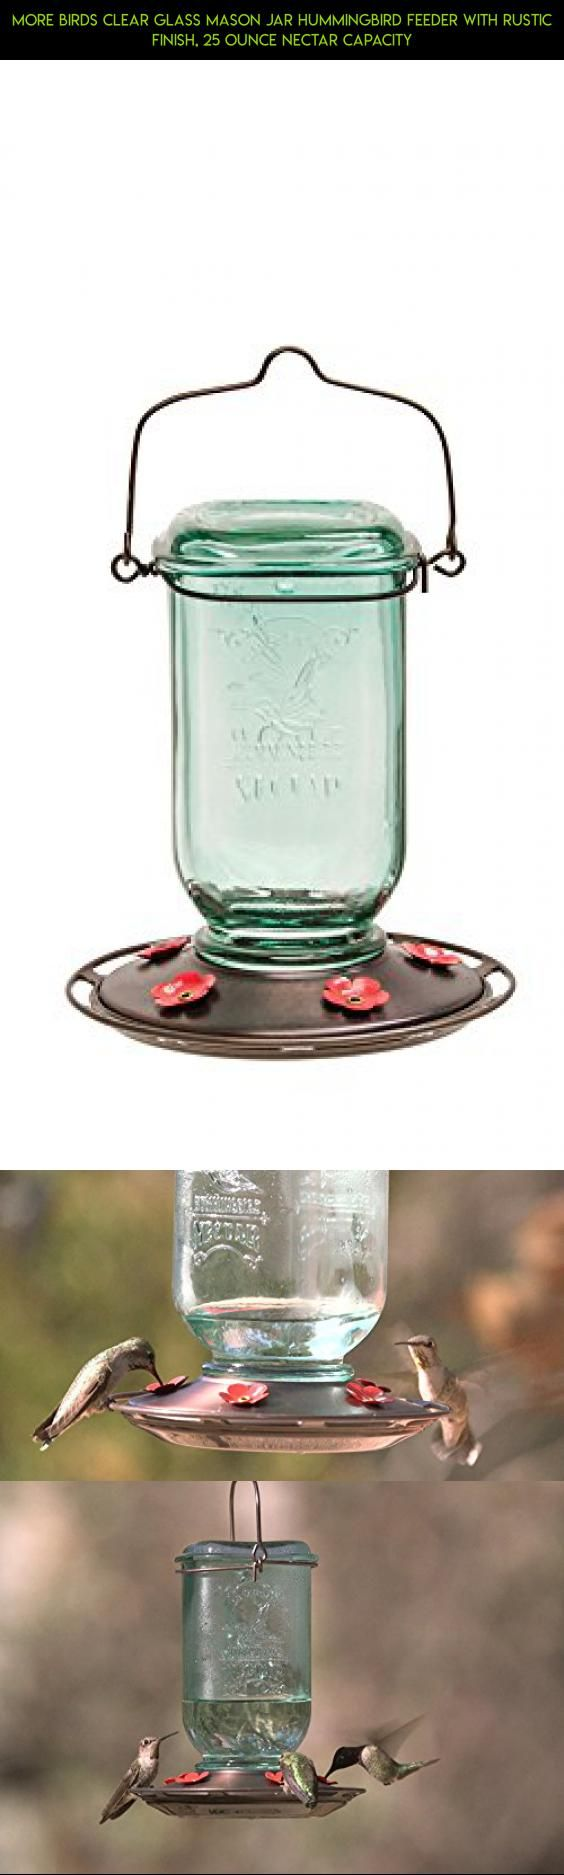 More Birds Clear Glass Mason Jar Hummingbird Feeder with Rustic Finish, 25 Ounce Nectar Capacity #shopping #plans #tech #hummingbird #drone #parts #racing #products #gadgets #kit #fpv #decor #technology #camera #outdoor